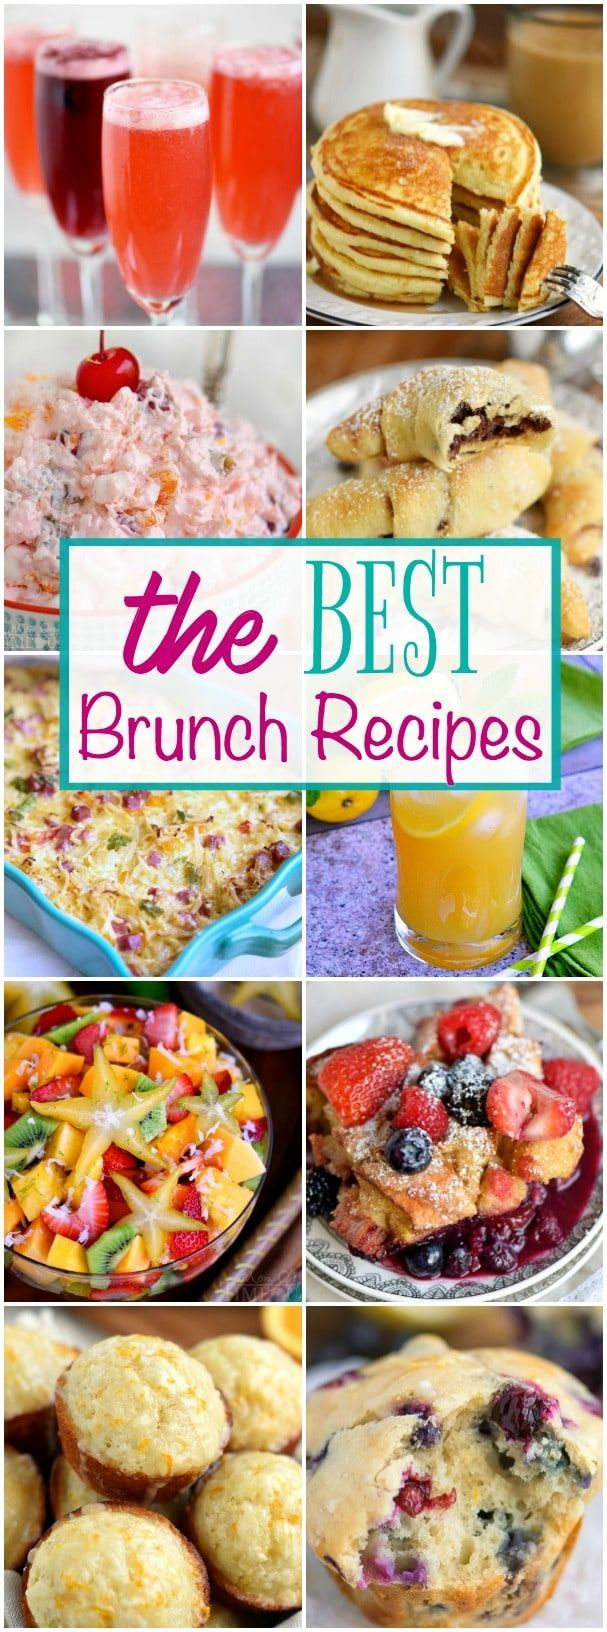 Hosting a baby shower and need some food ideas look no further since - Look No Further For The Best Brunch Recipes I Ve Got You Covered With